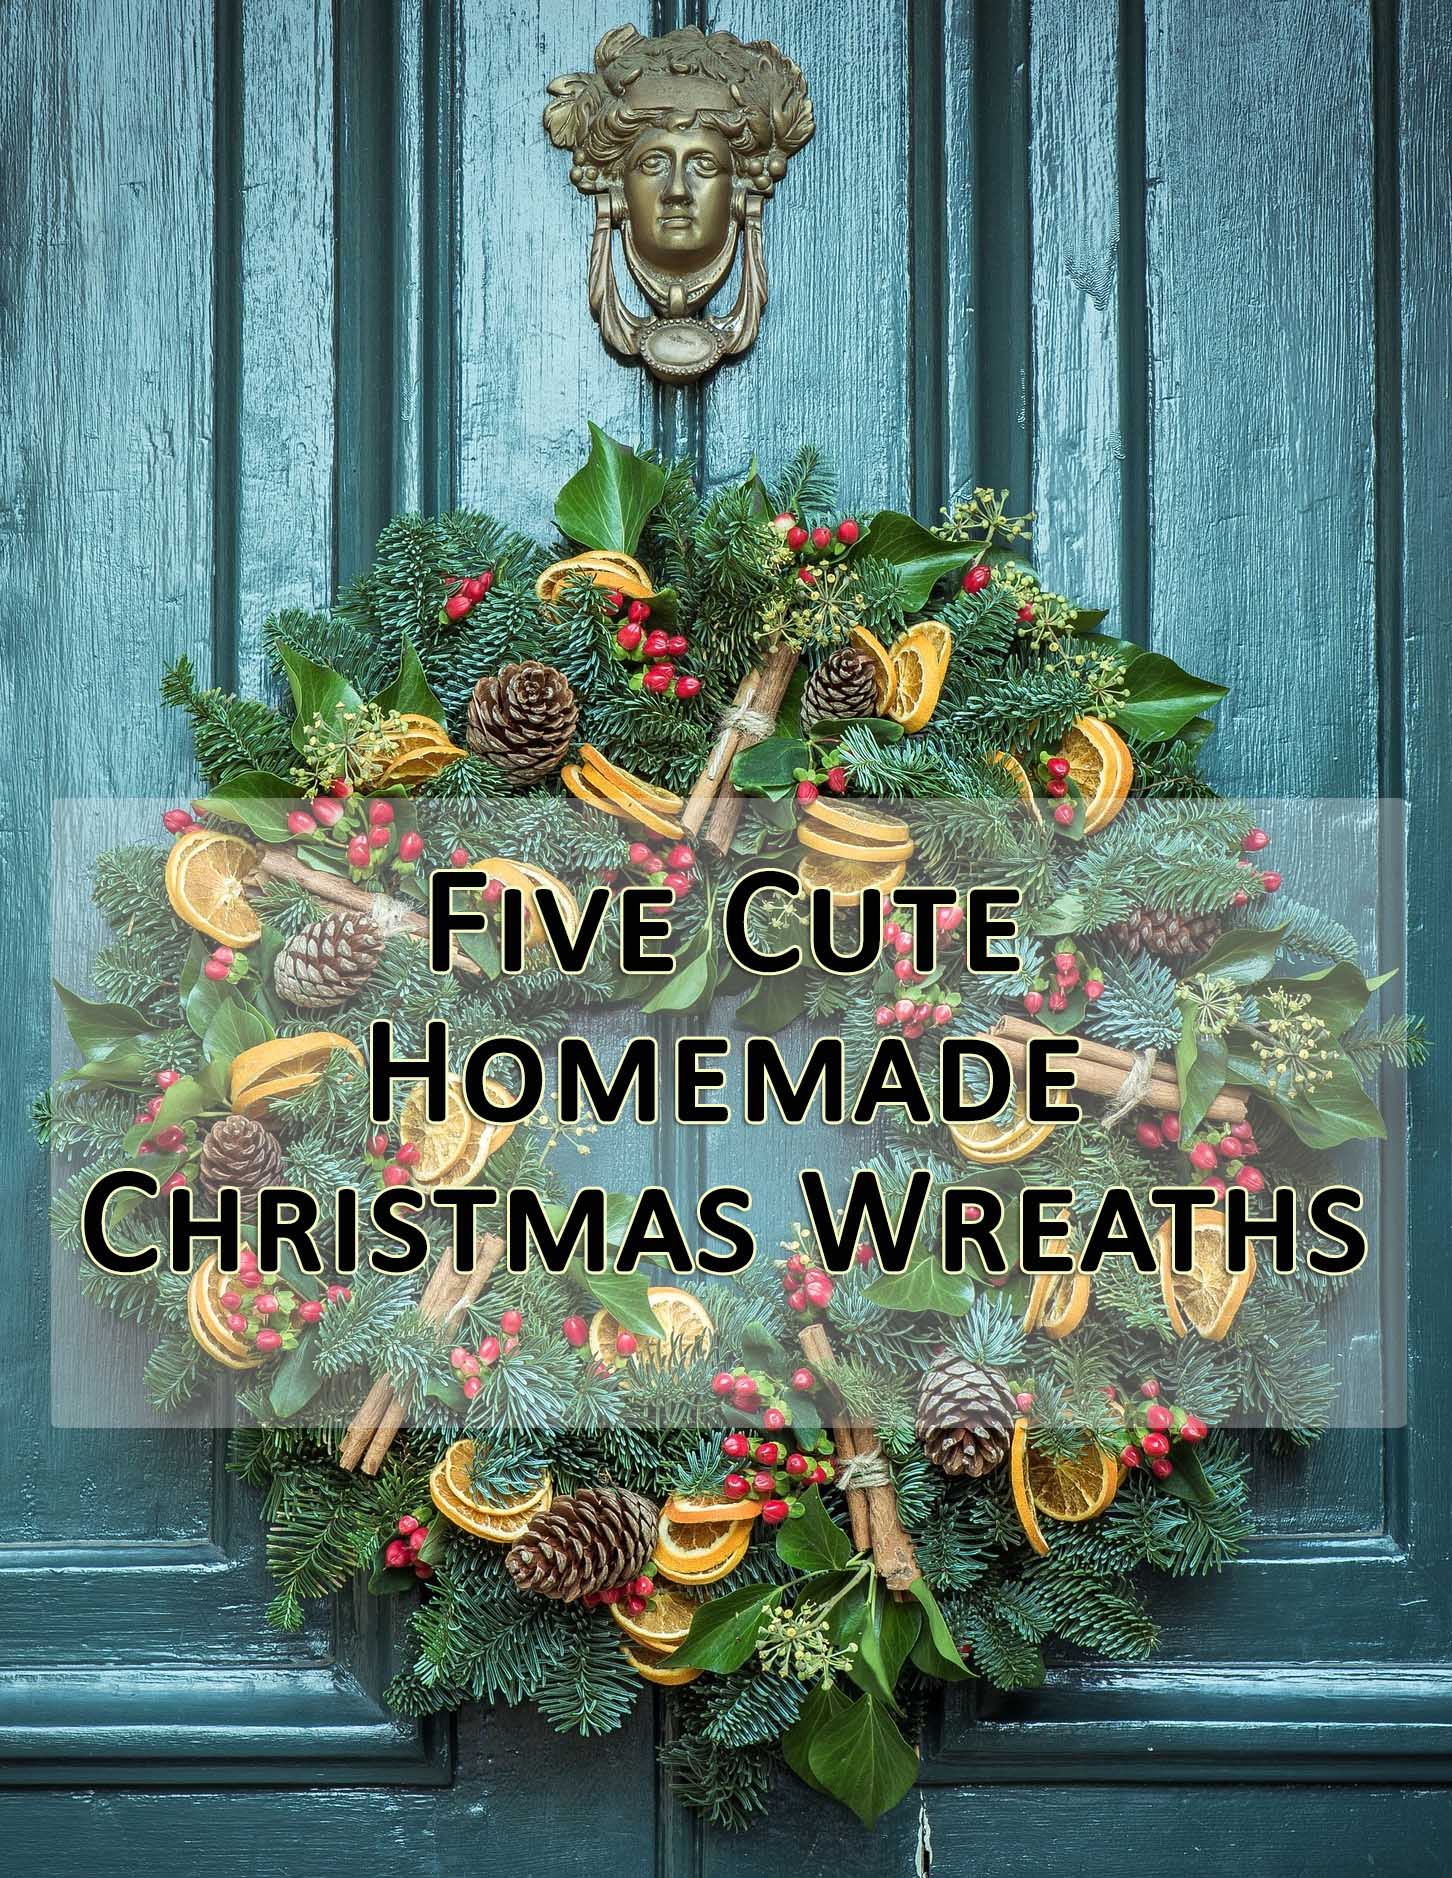 5 cute homemade christmas wreaths - Cute Homemade Christmas Decorations